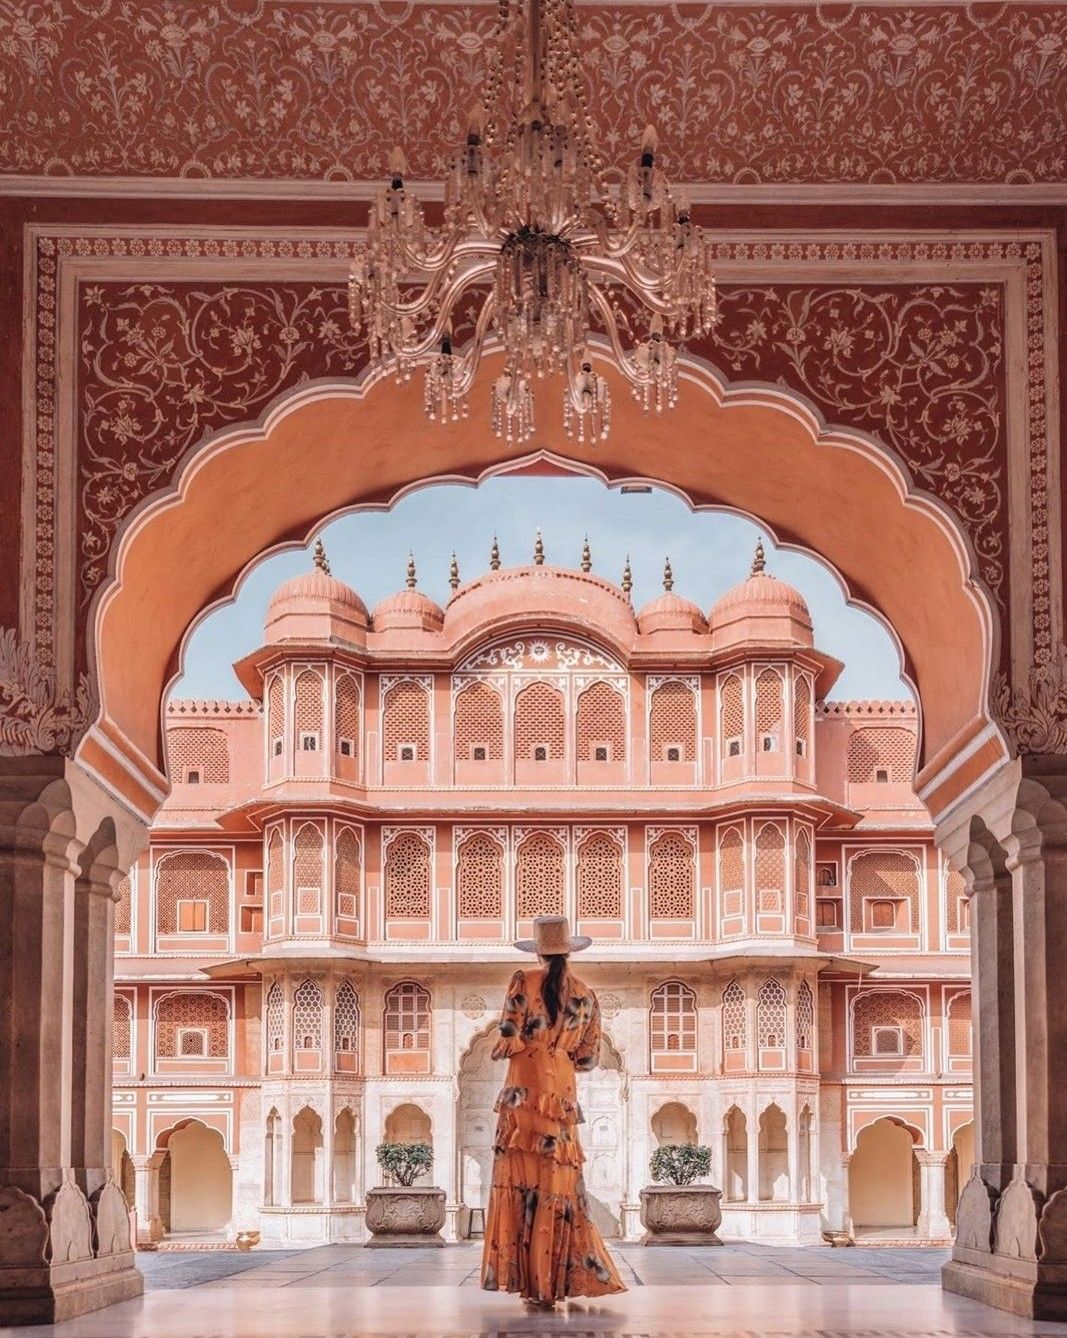 City Palace Jaipur India In 2020 City Palace Jaipur Hm Dress Shopstyle